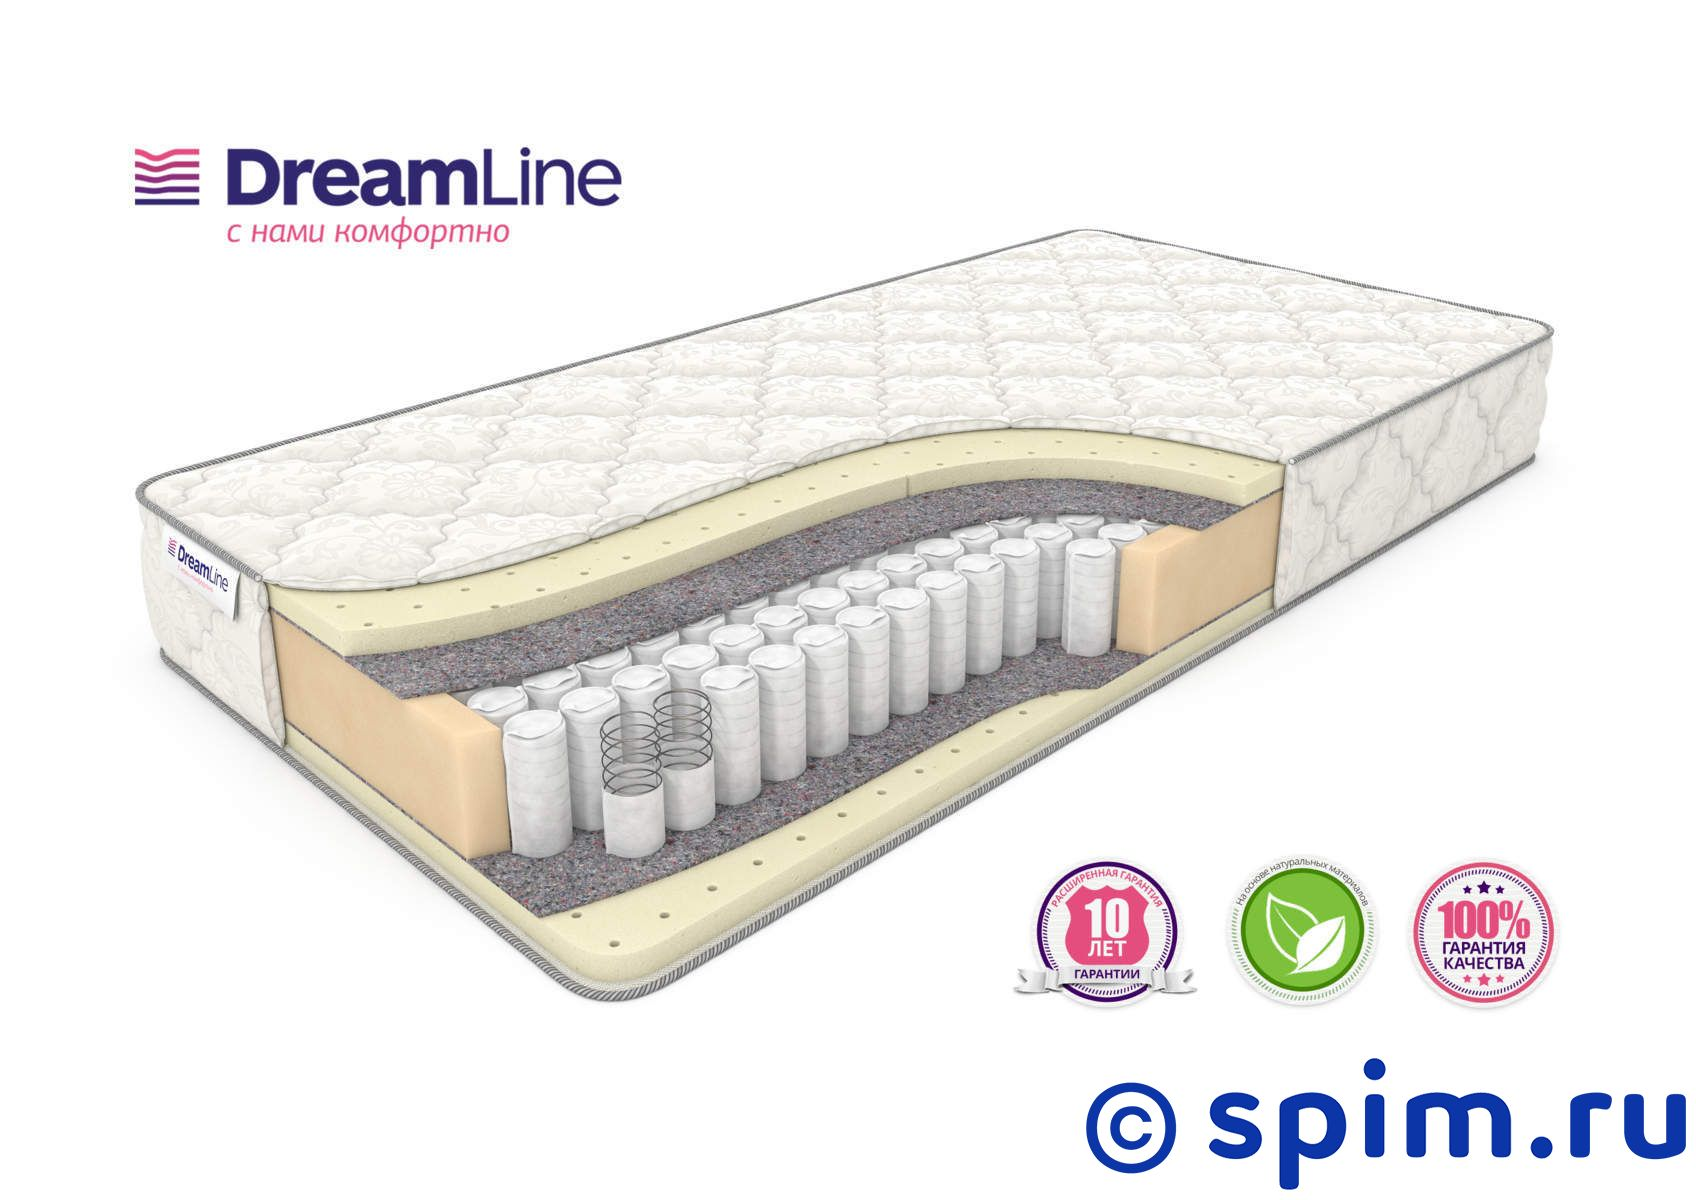 Матрас DreamLine Sleep 3 Tfk 180х200 см